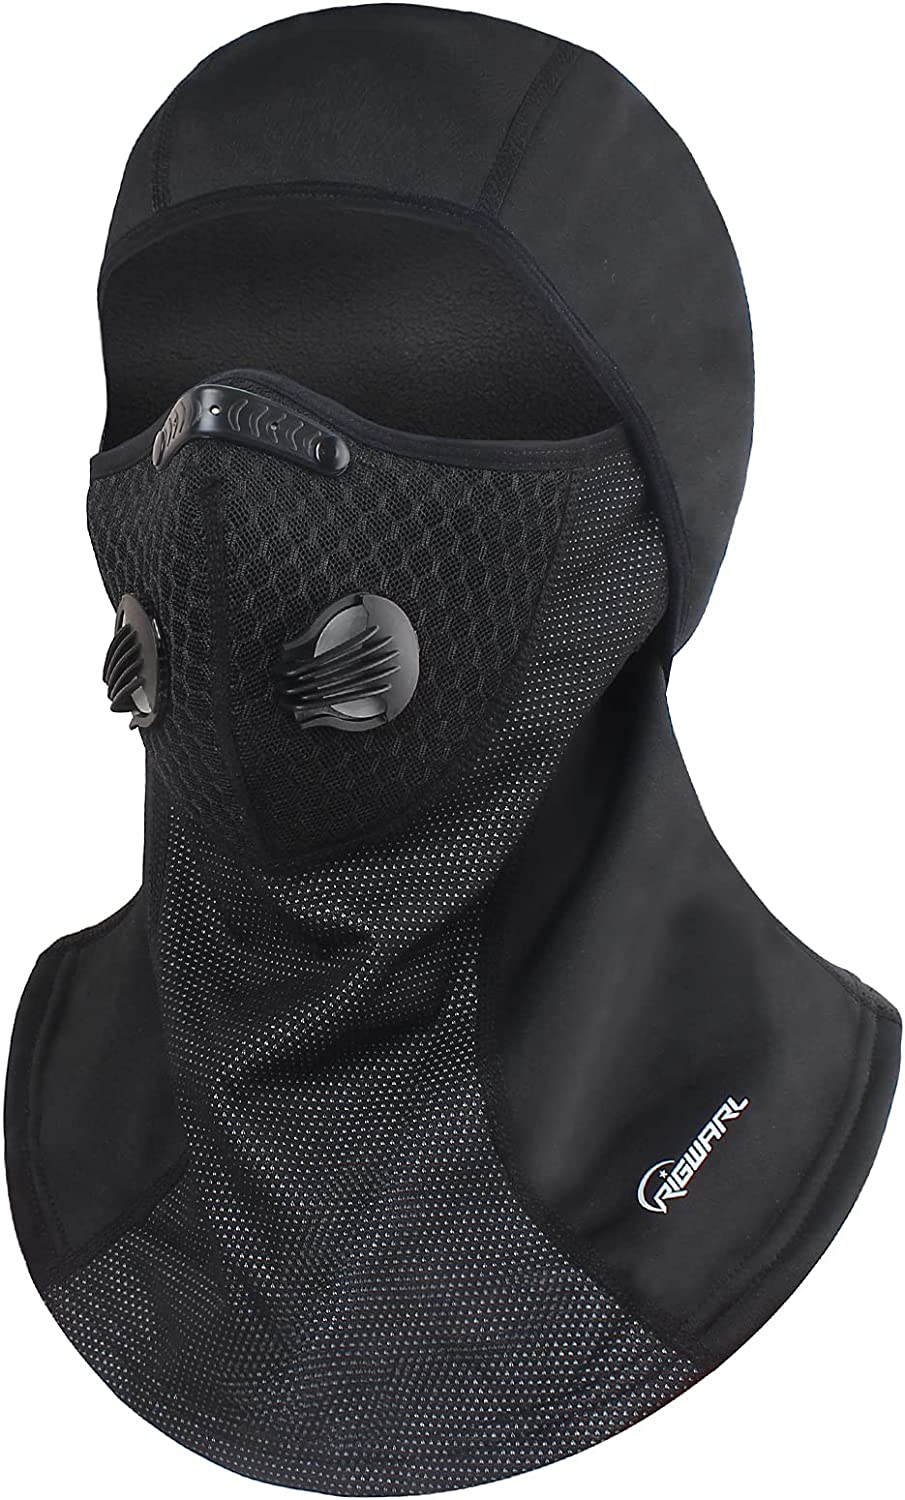 RIGWARL Balaclava Face Mask Upgraded Limited time for free shipping M for Cheap super special price Neck Gaiter Ski